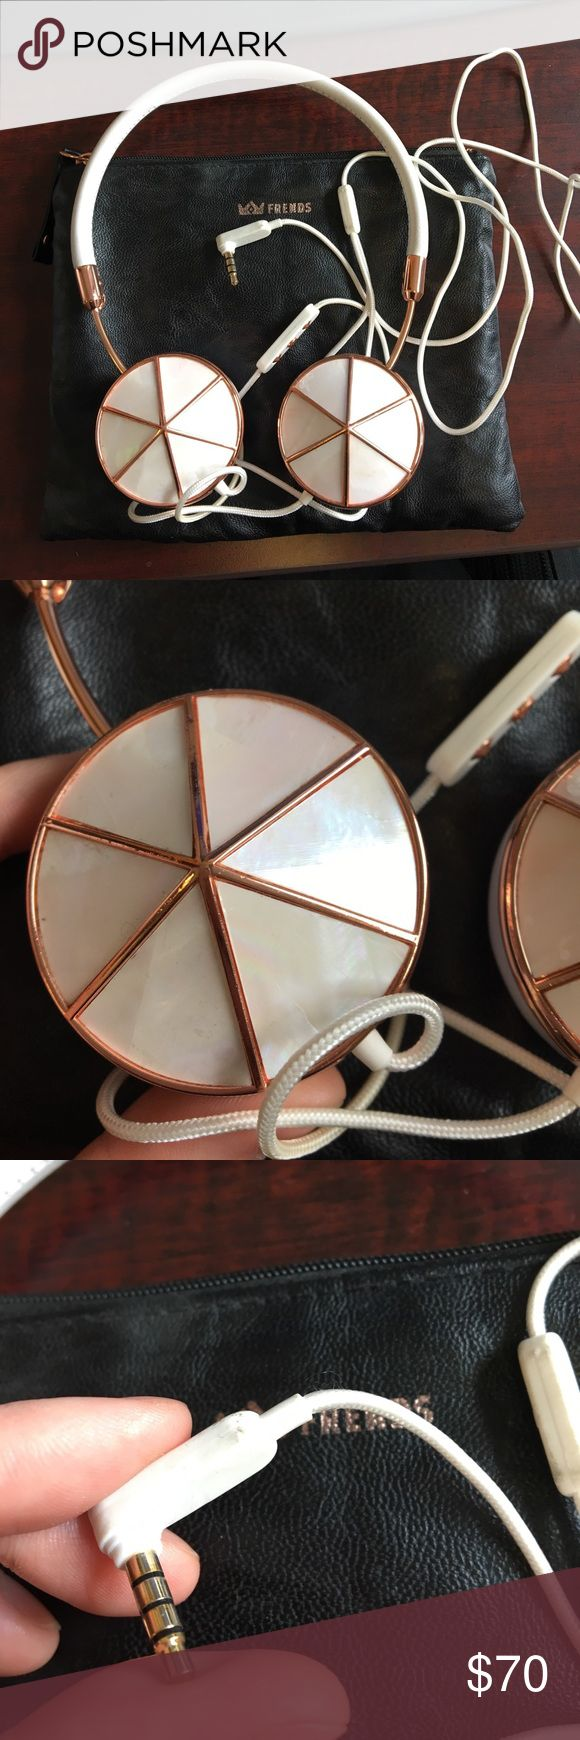 Frends Layla Headphones Rose gold Frends Layla headphones with removable caps. Comes with mother of pearl and plain rose gold caps. In good condition. Pouch included. Frends Accessories